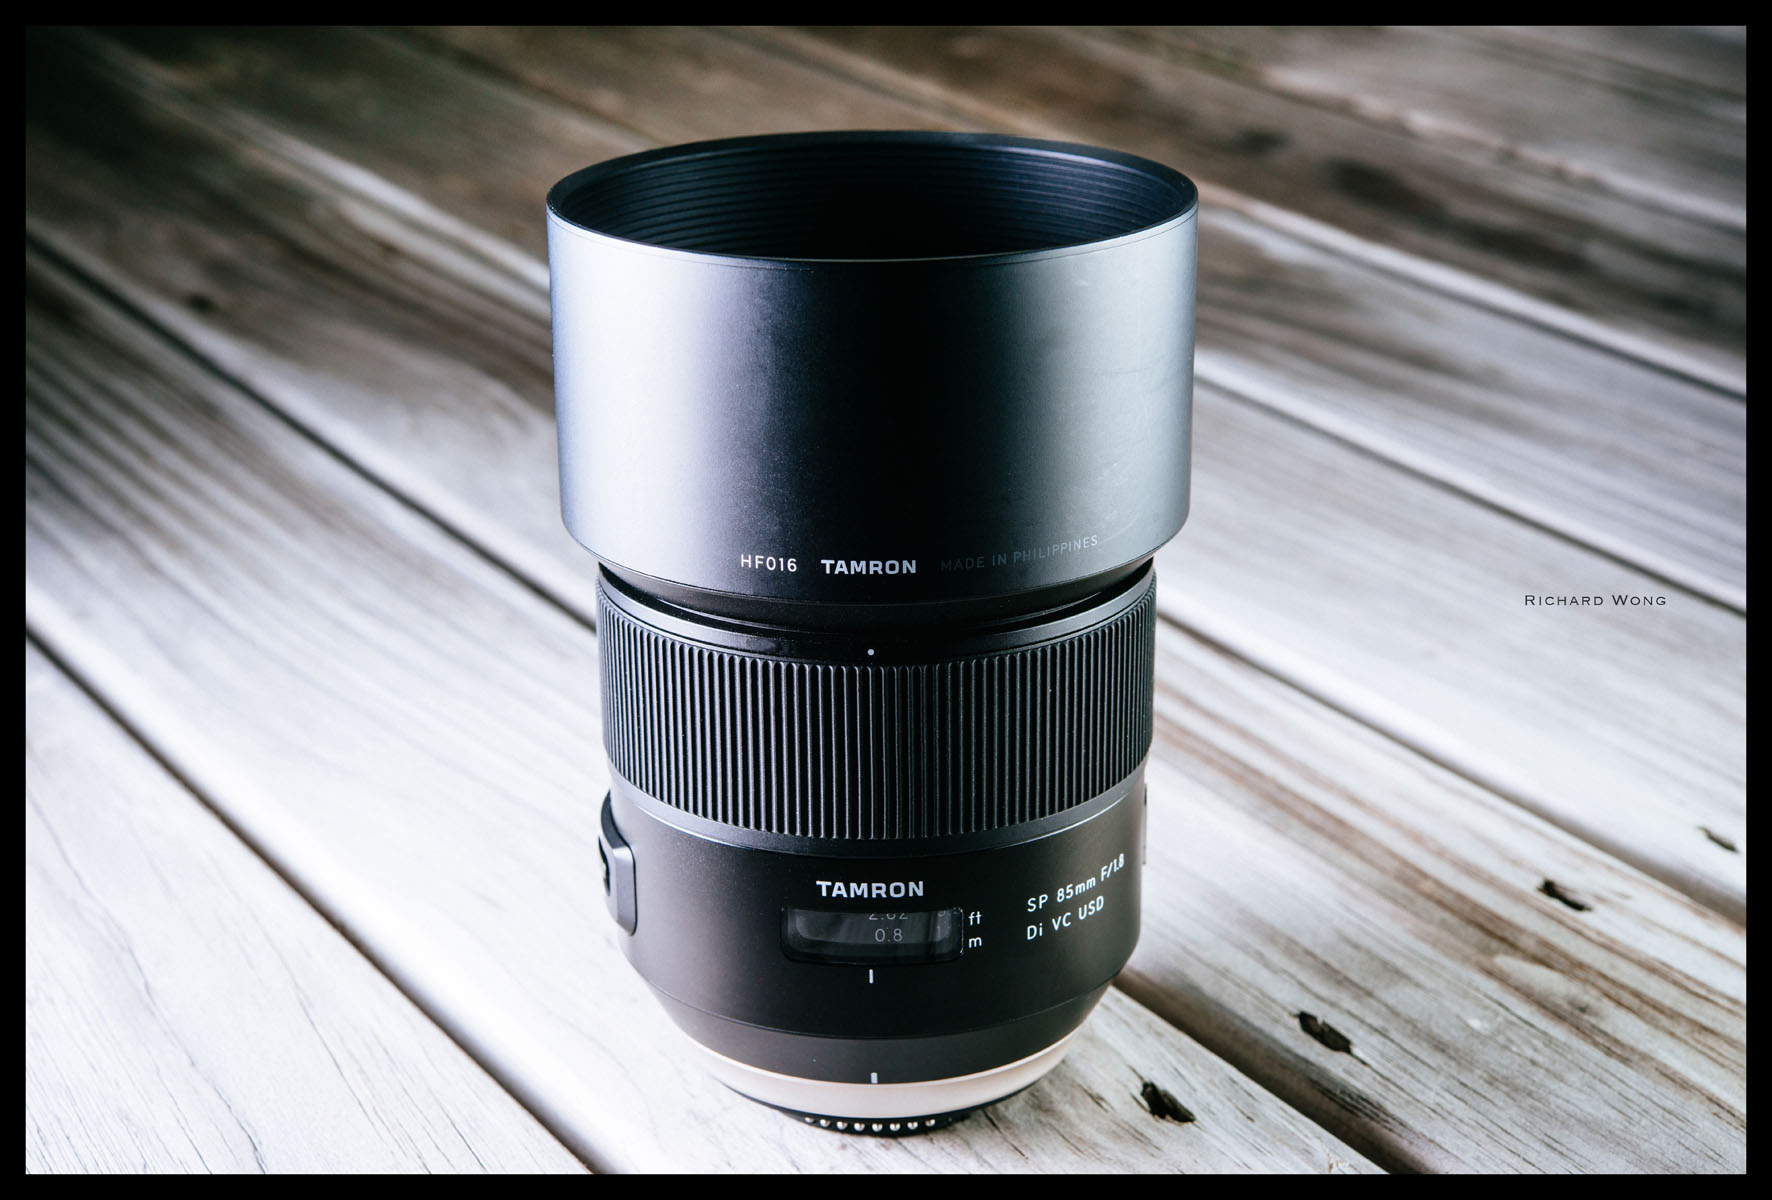 Tamron-f016-85mm-f1.8-vc-review-07